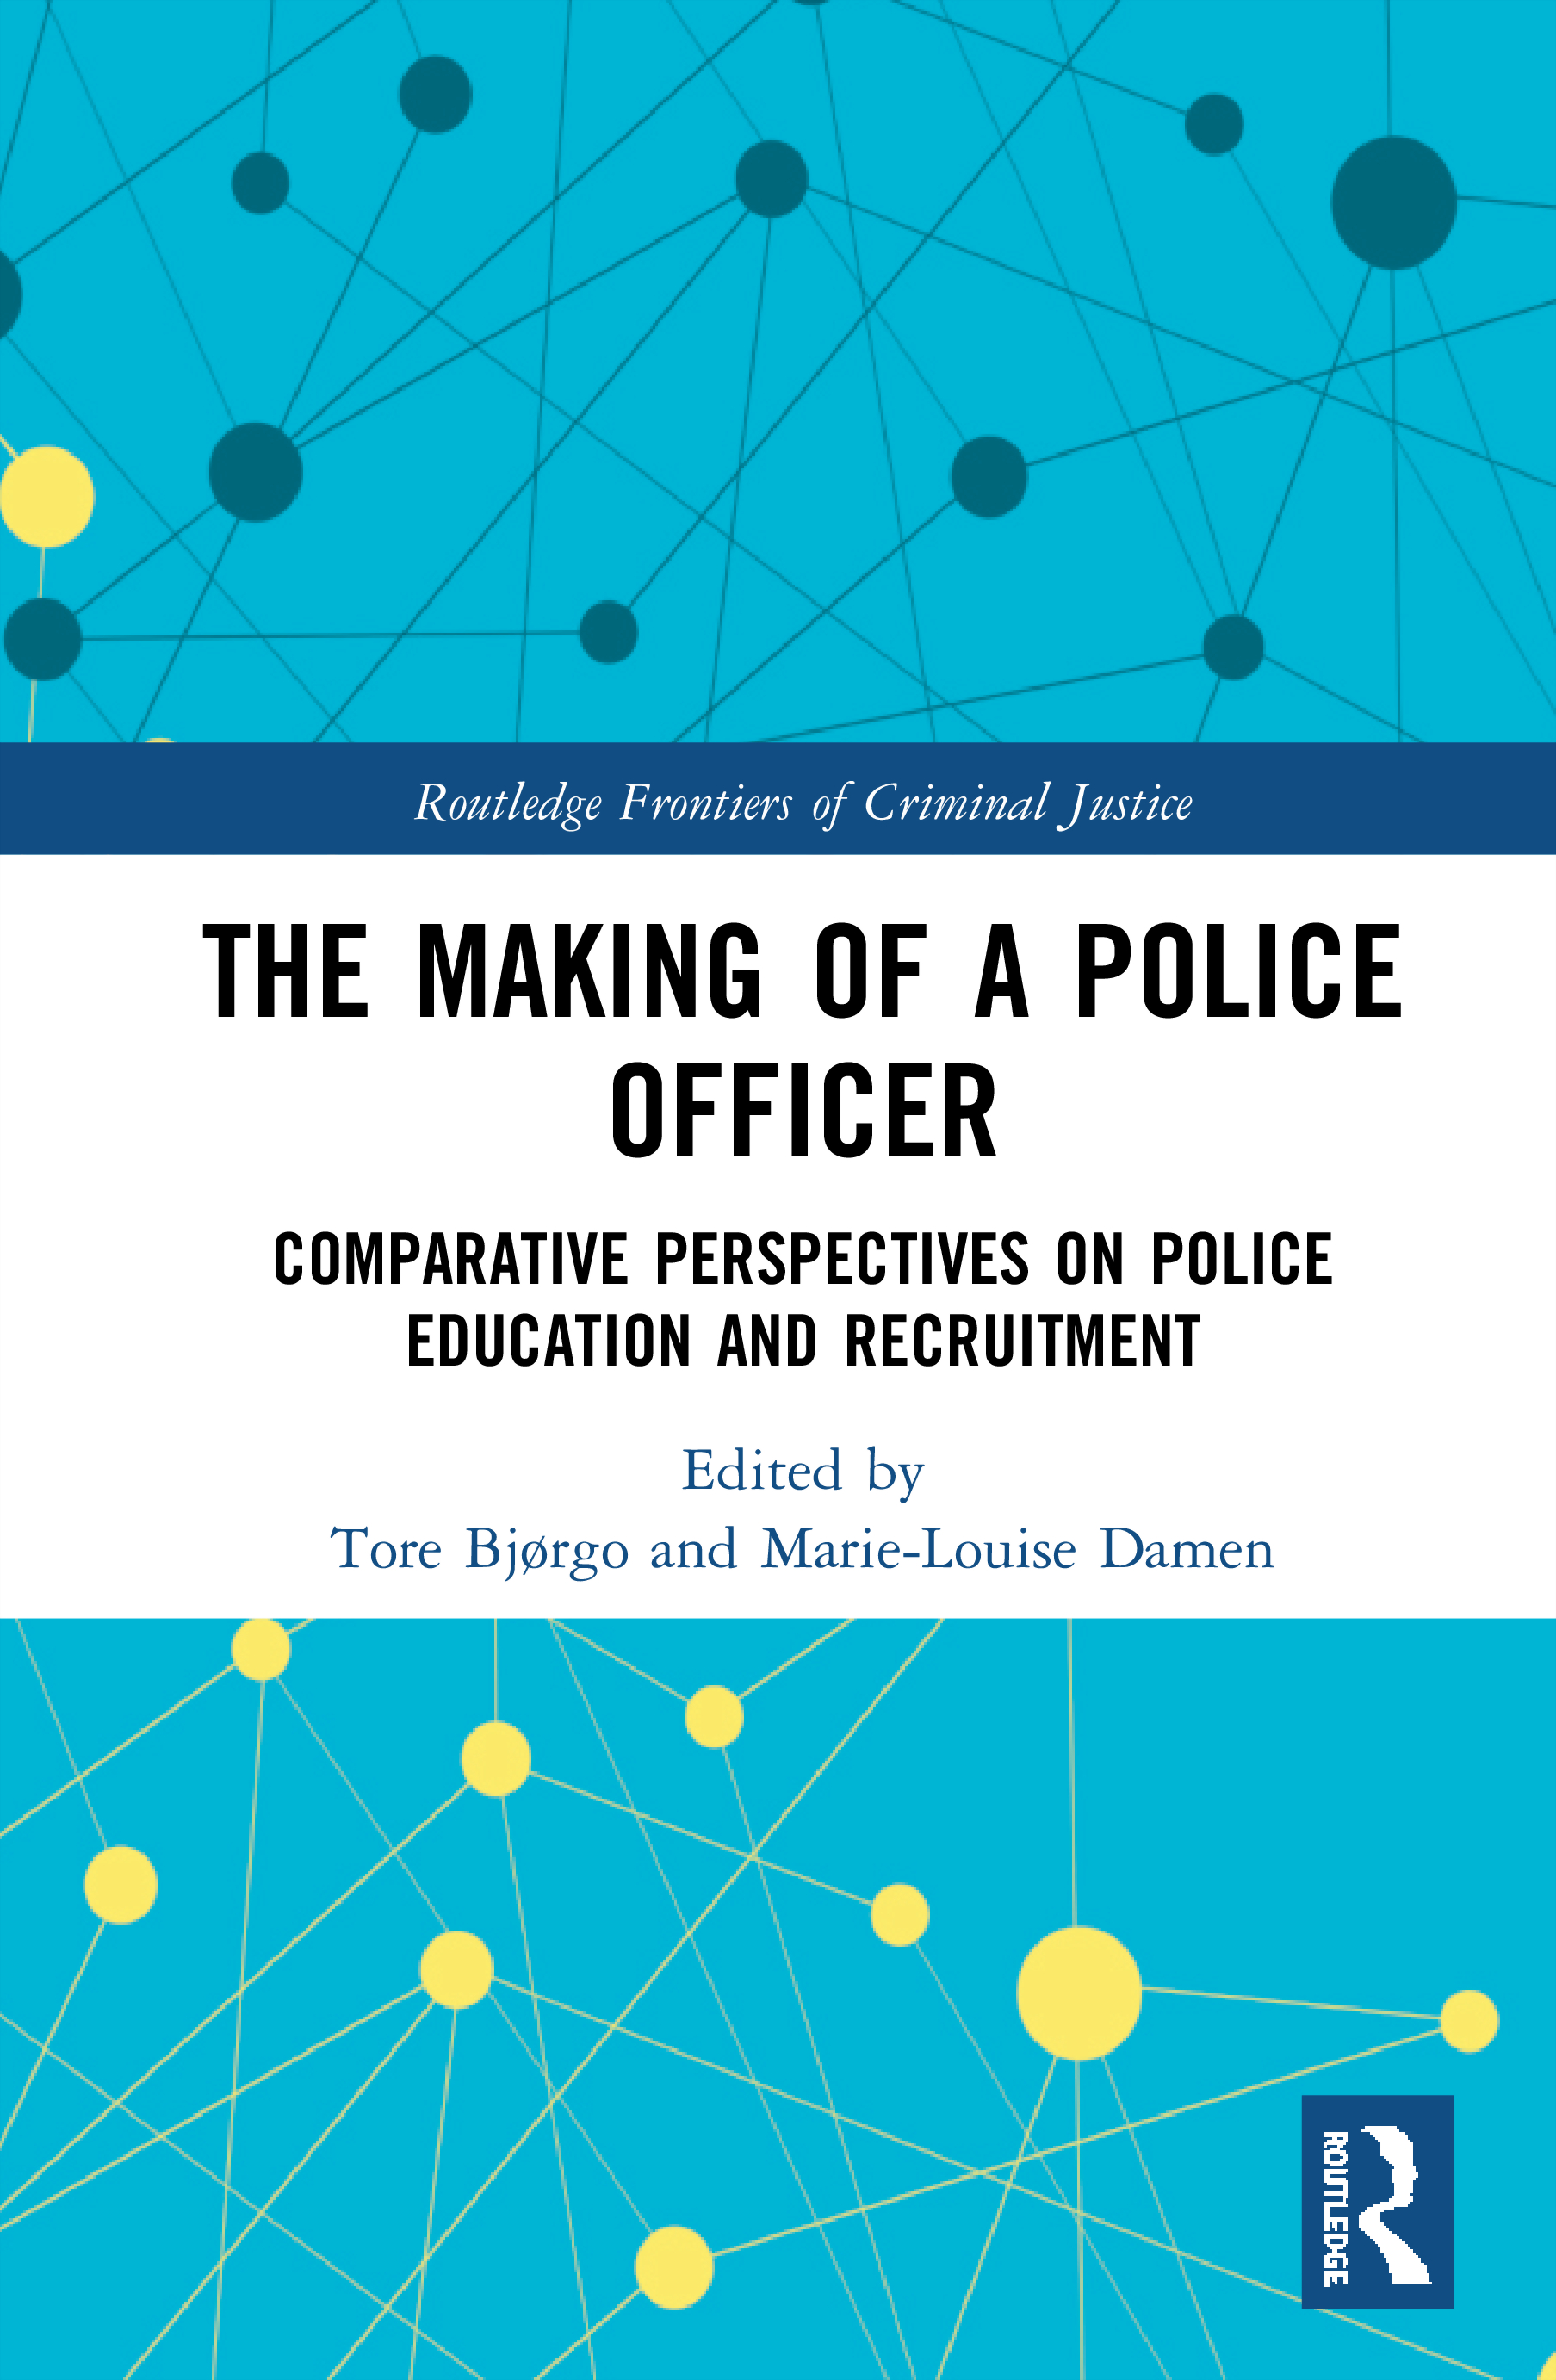 The Making of a Police Officer: Comparative Perspectives on Police Education and Recruitment book cover